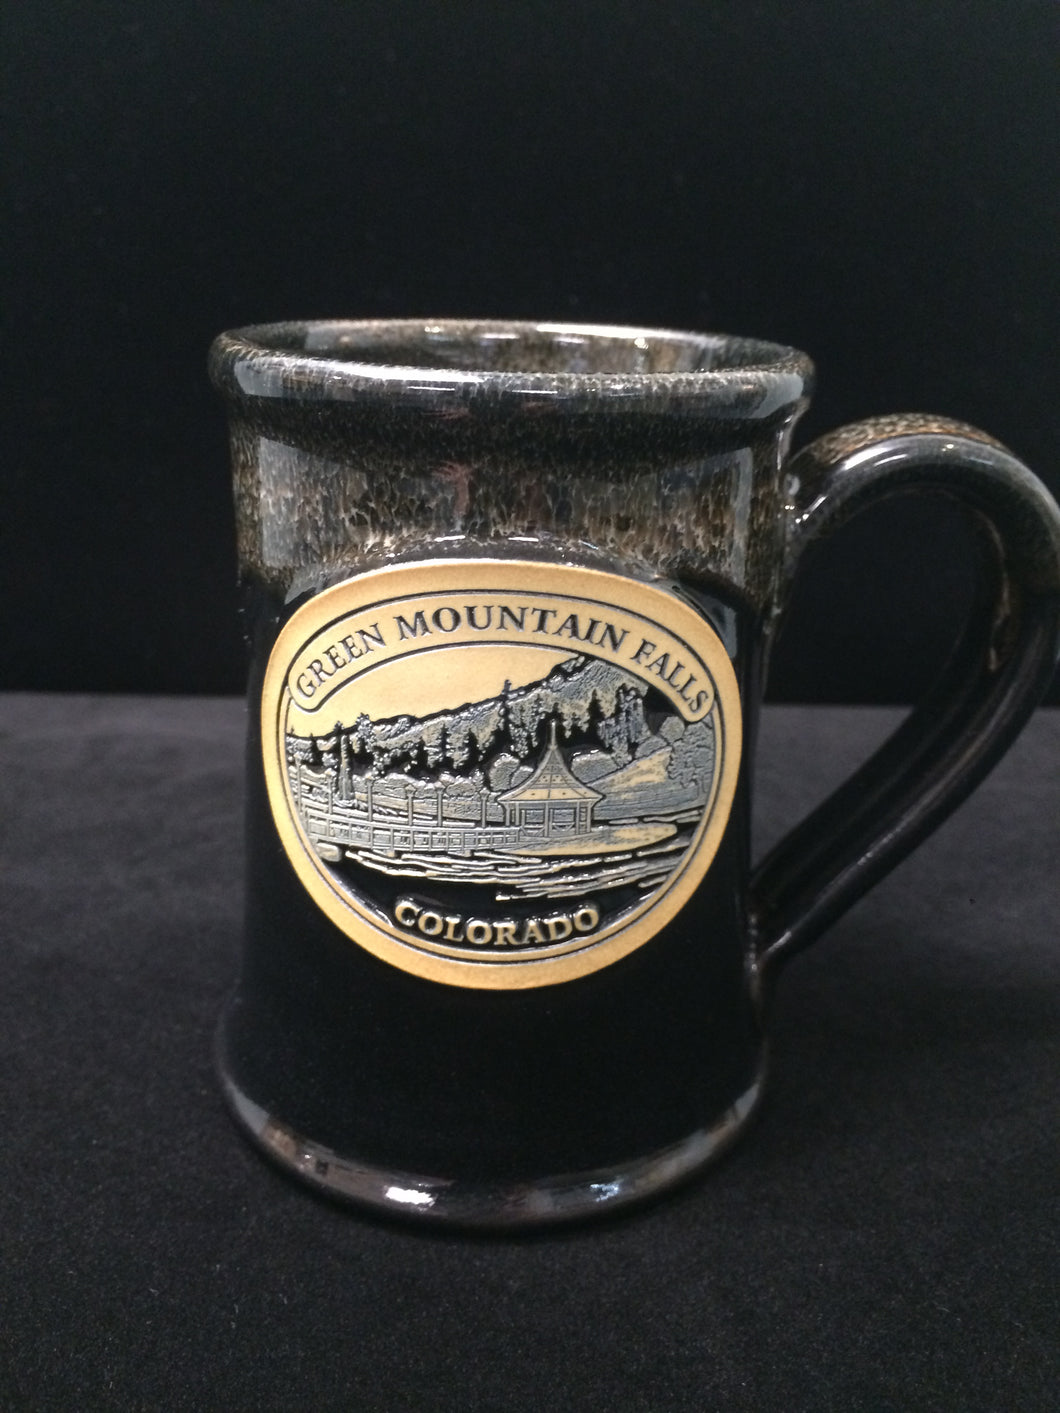 *NEW* Green Mountain Falls Mug 12 oz